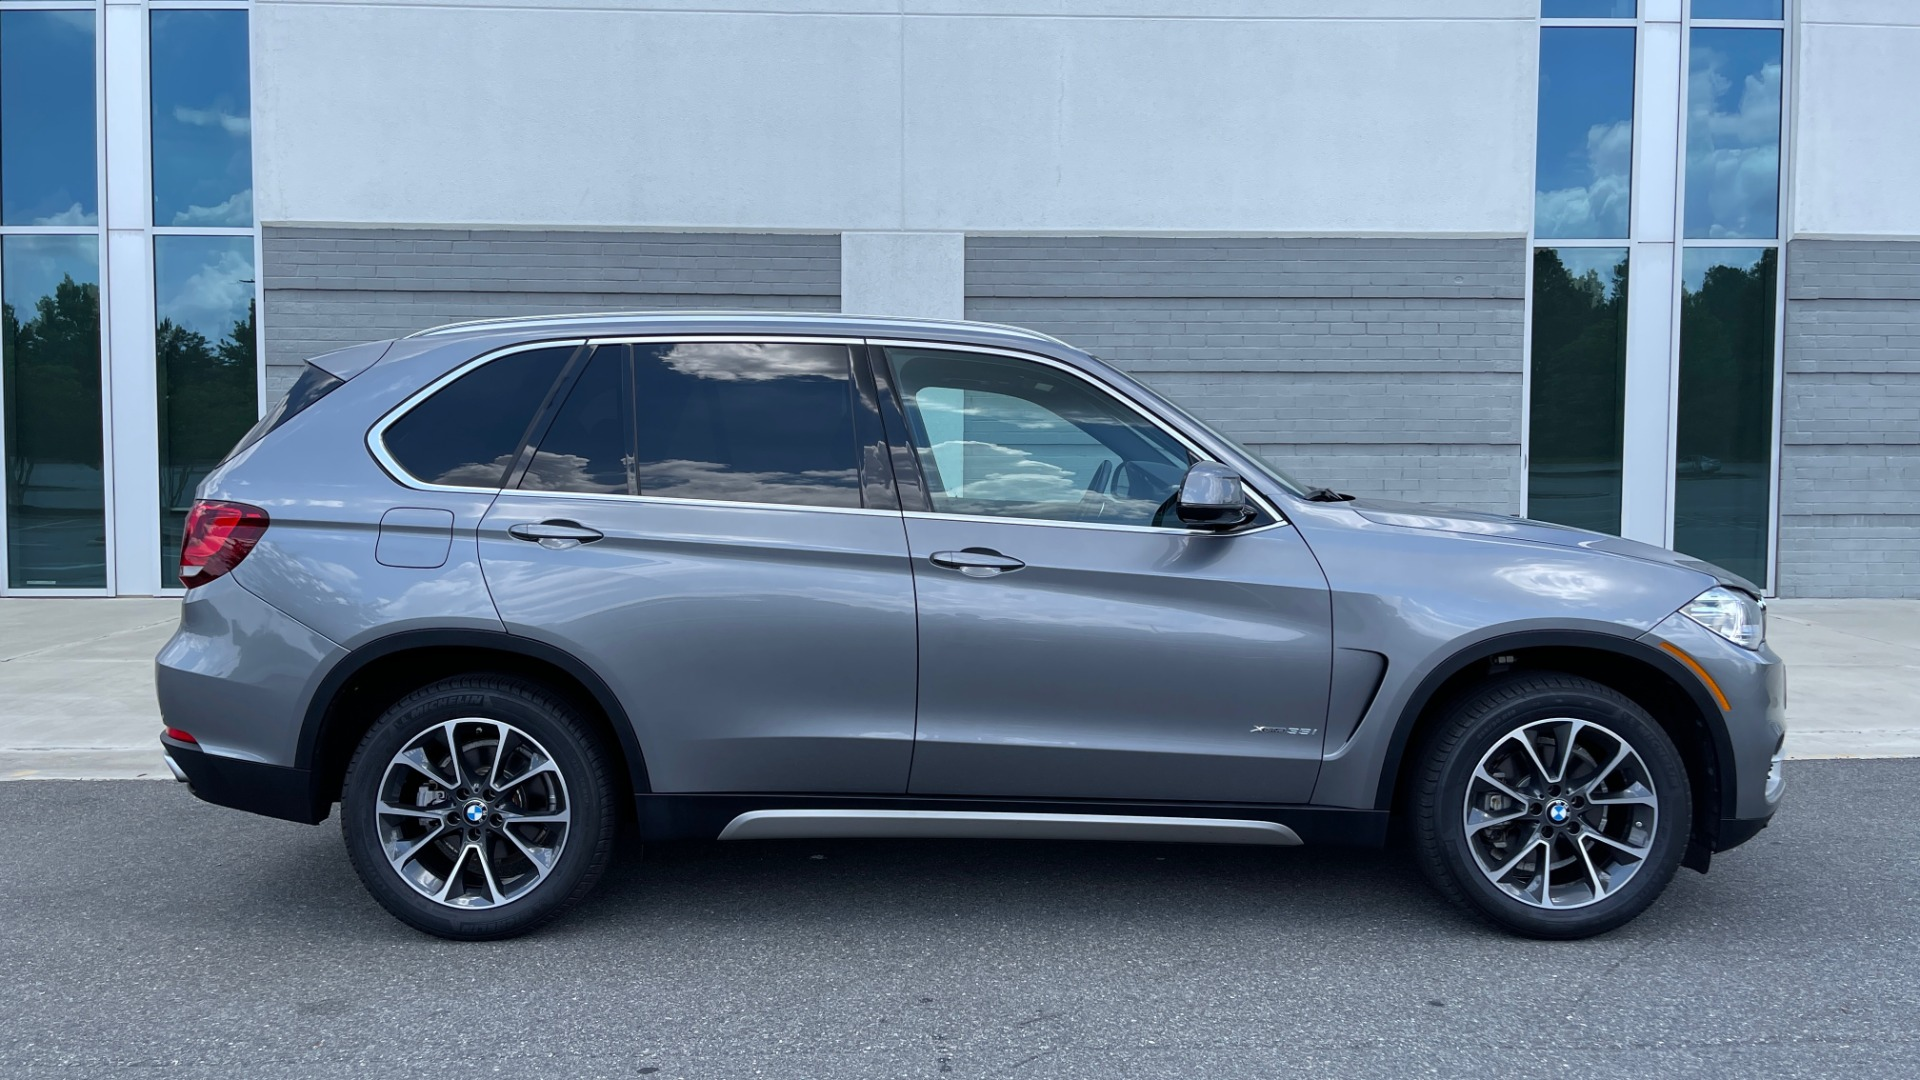 Used 2018 BMW X5 XDRIVE35I PREMIUM / DRVR ASST / WIRELESS CHARGING / CAMERAS for sale $46,995 at Formula Imports in Charlotte NC 28227 7